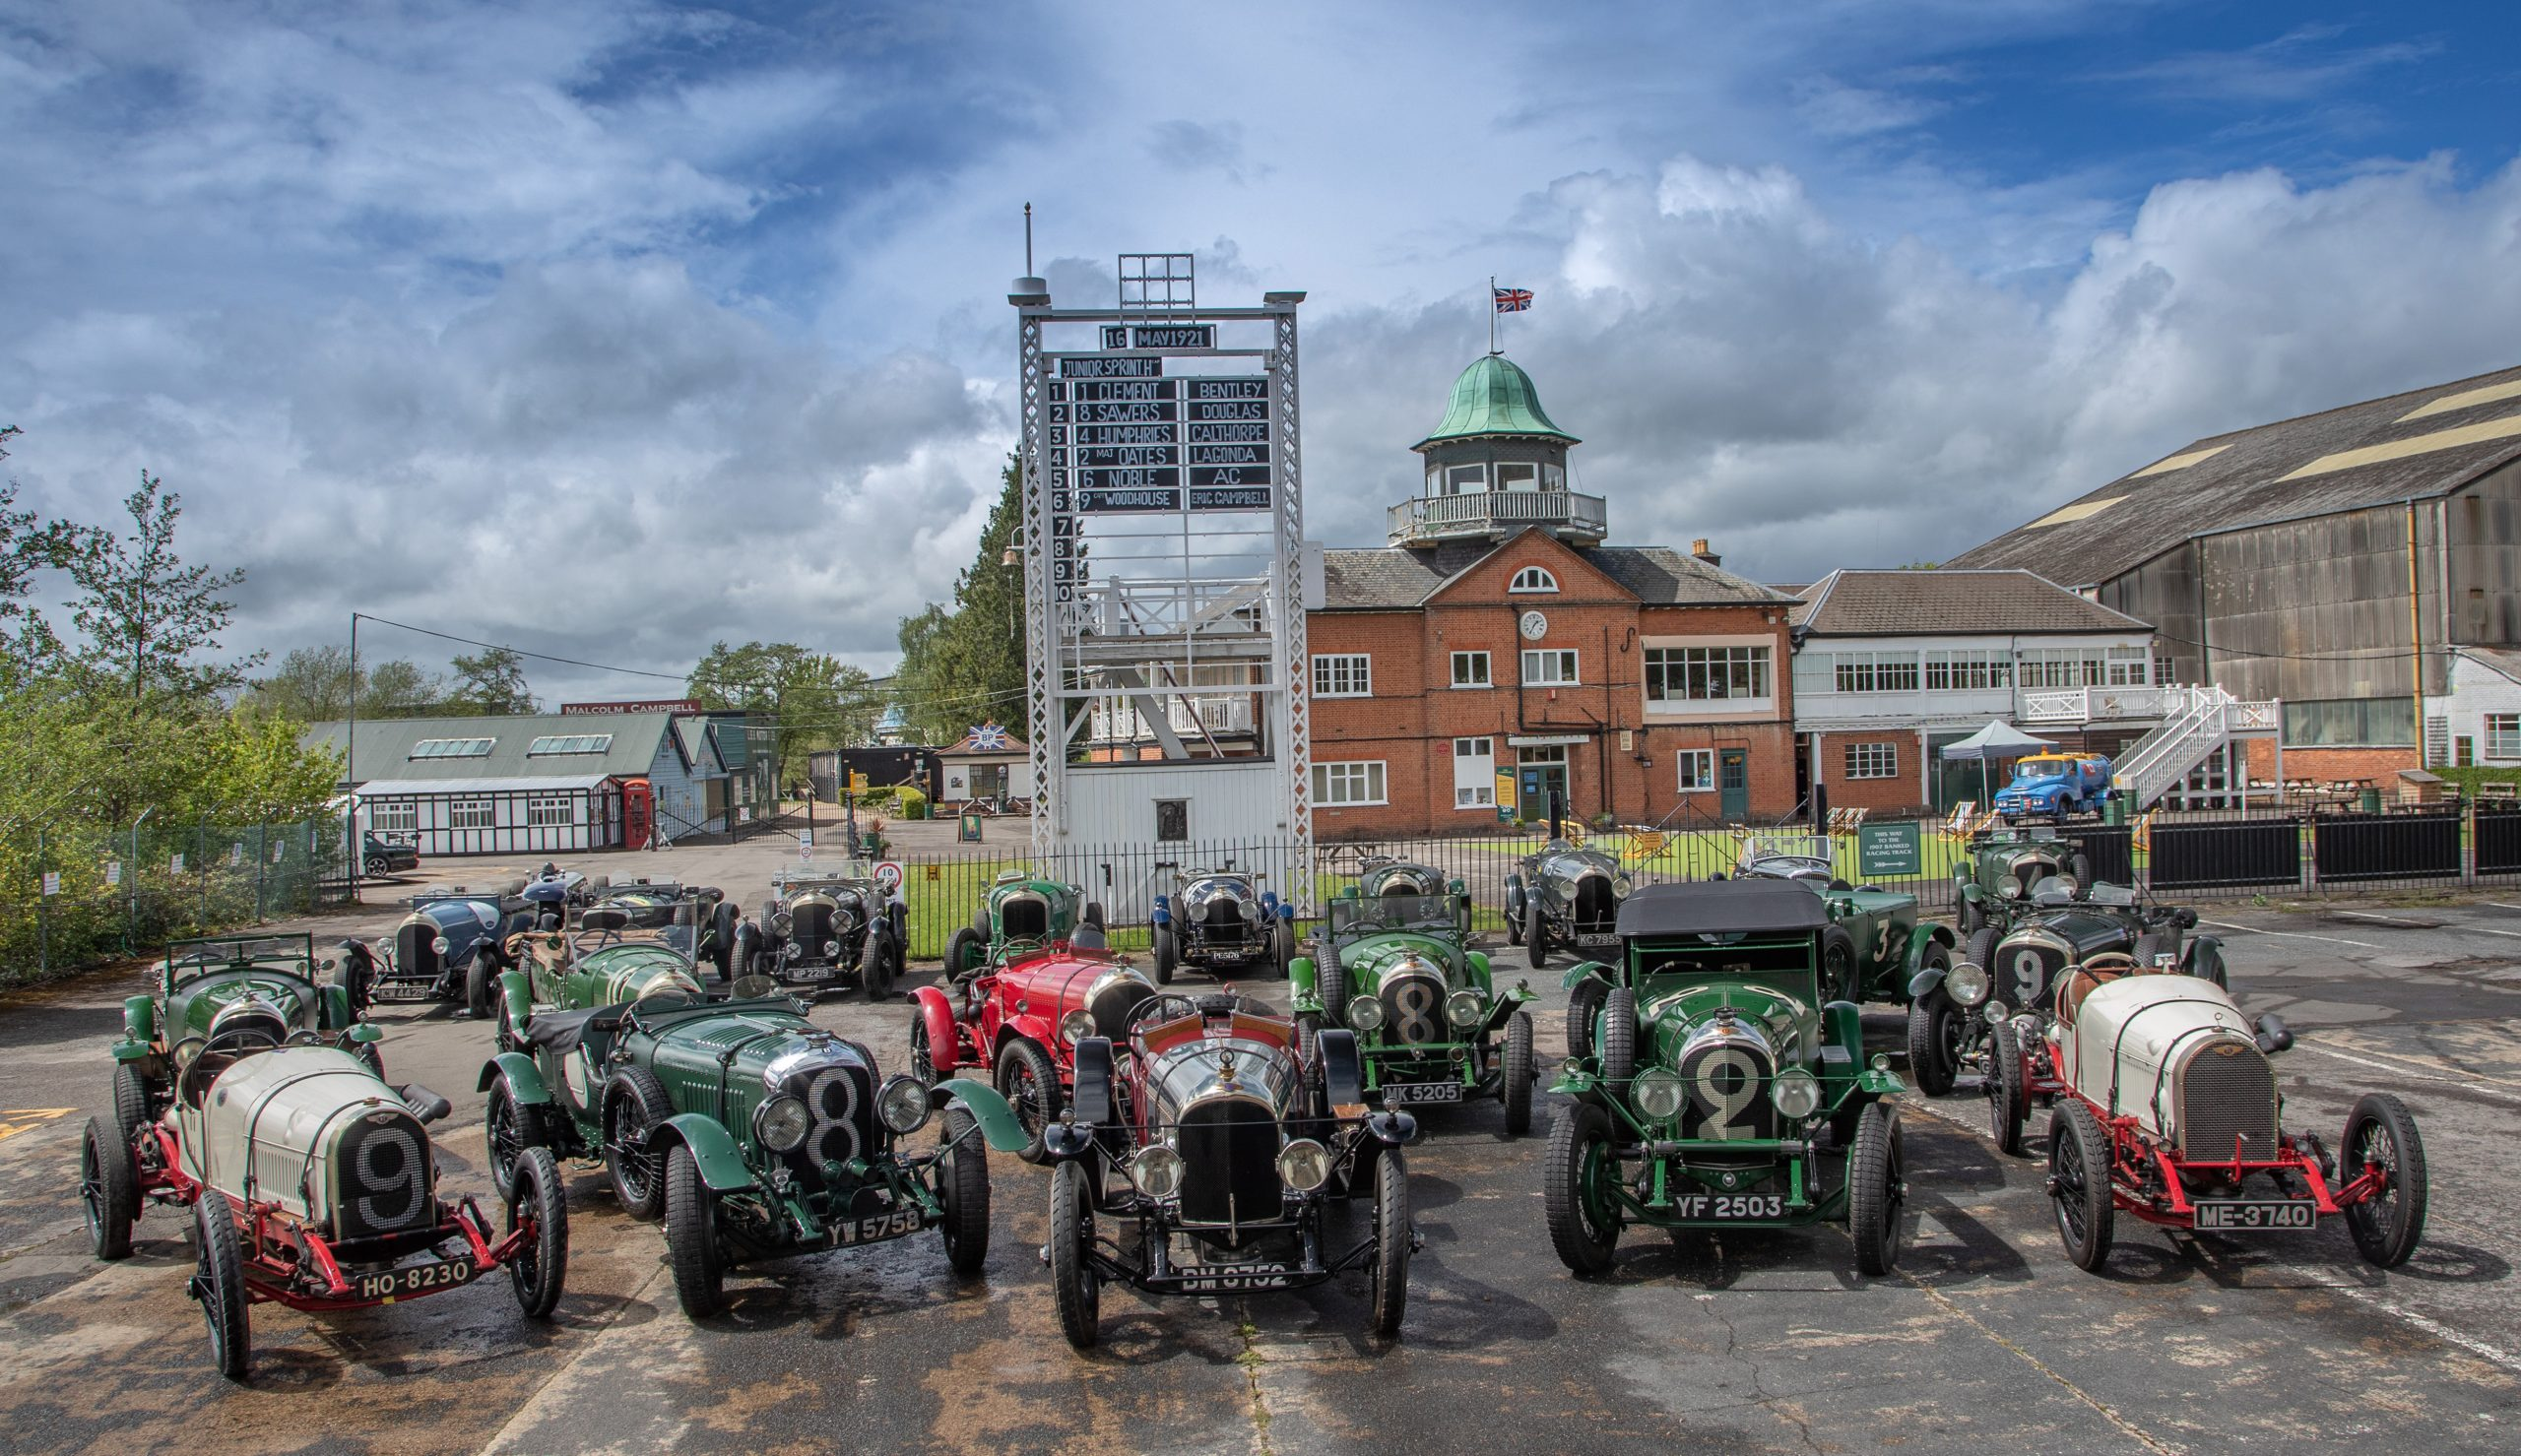 This May marked the 100th anniversary of which significant event in Bentley's history?